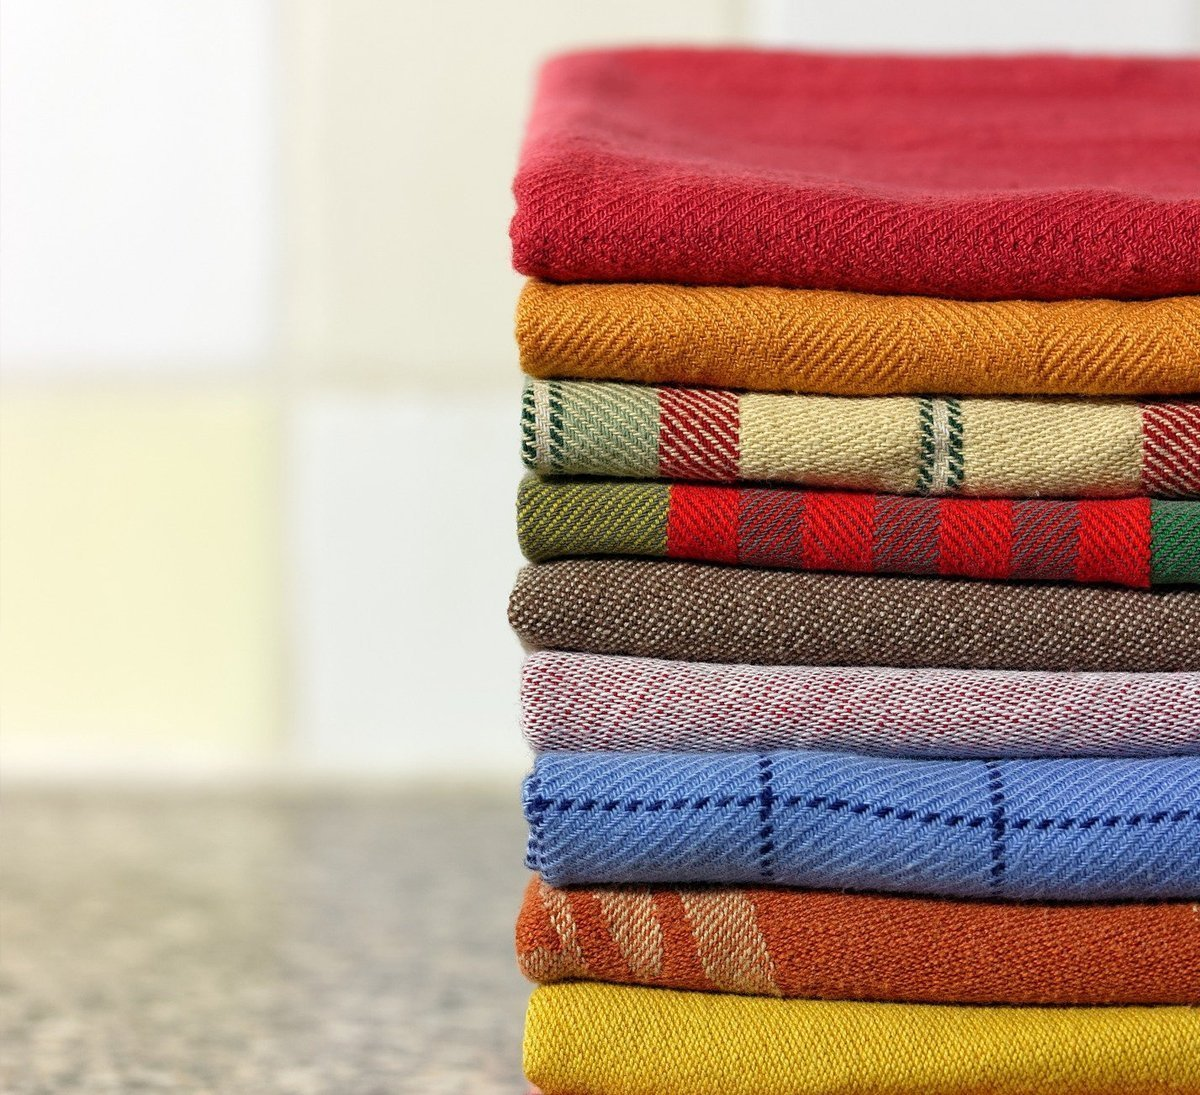 Different Types of Kitchen Towels